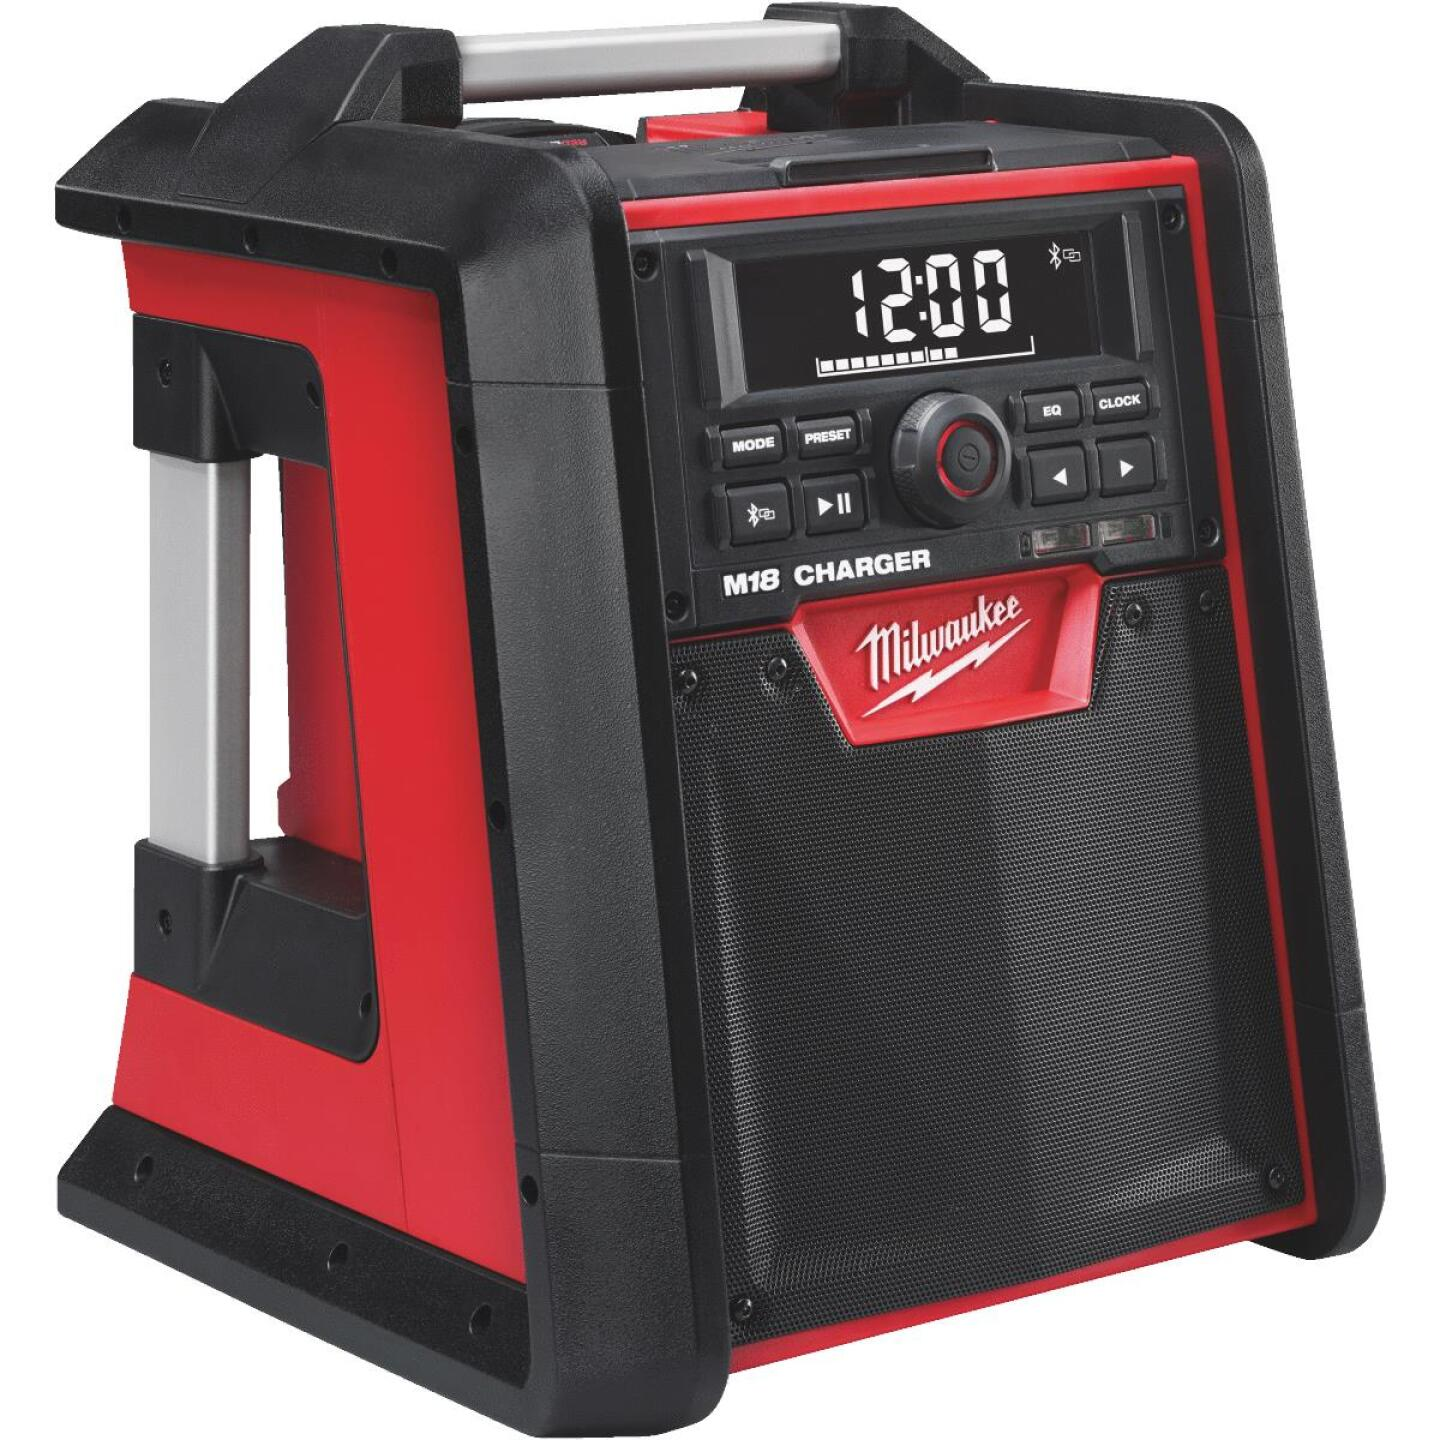 Milwaukee M18 18-Volt Lithium-Ion Bluetooth Cordless Jobsite Radio and Battery Charger (Bare Tool) Image 3